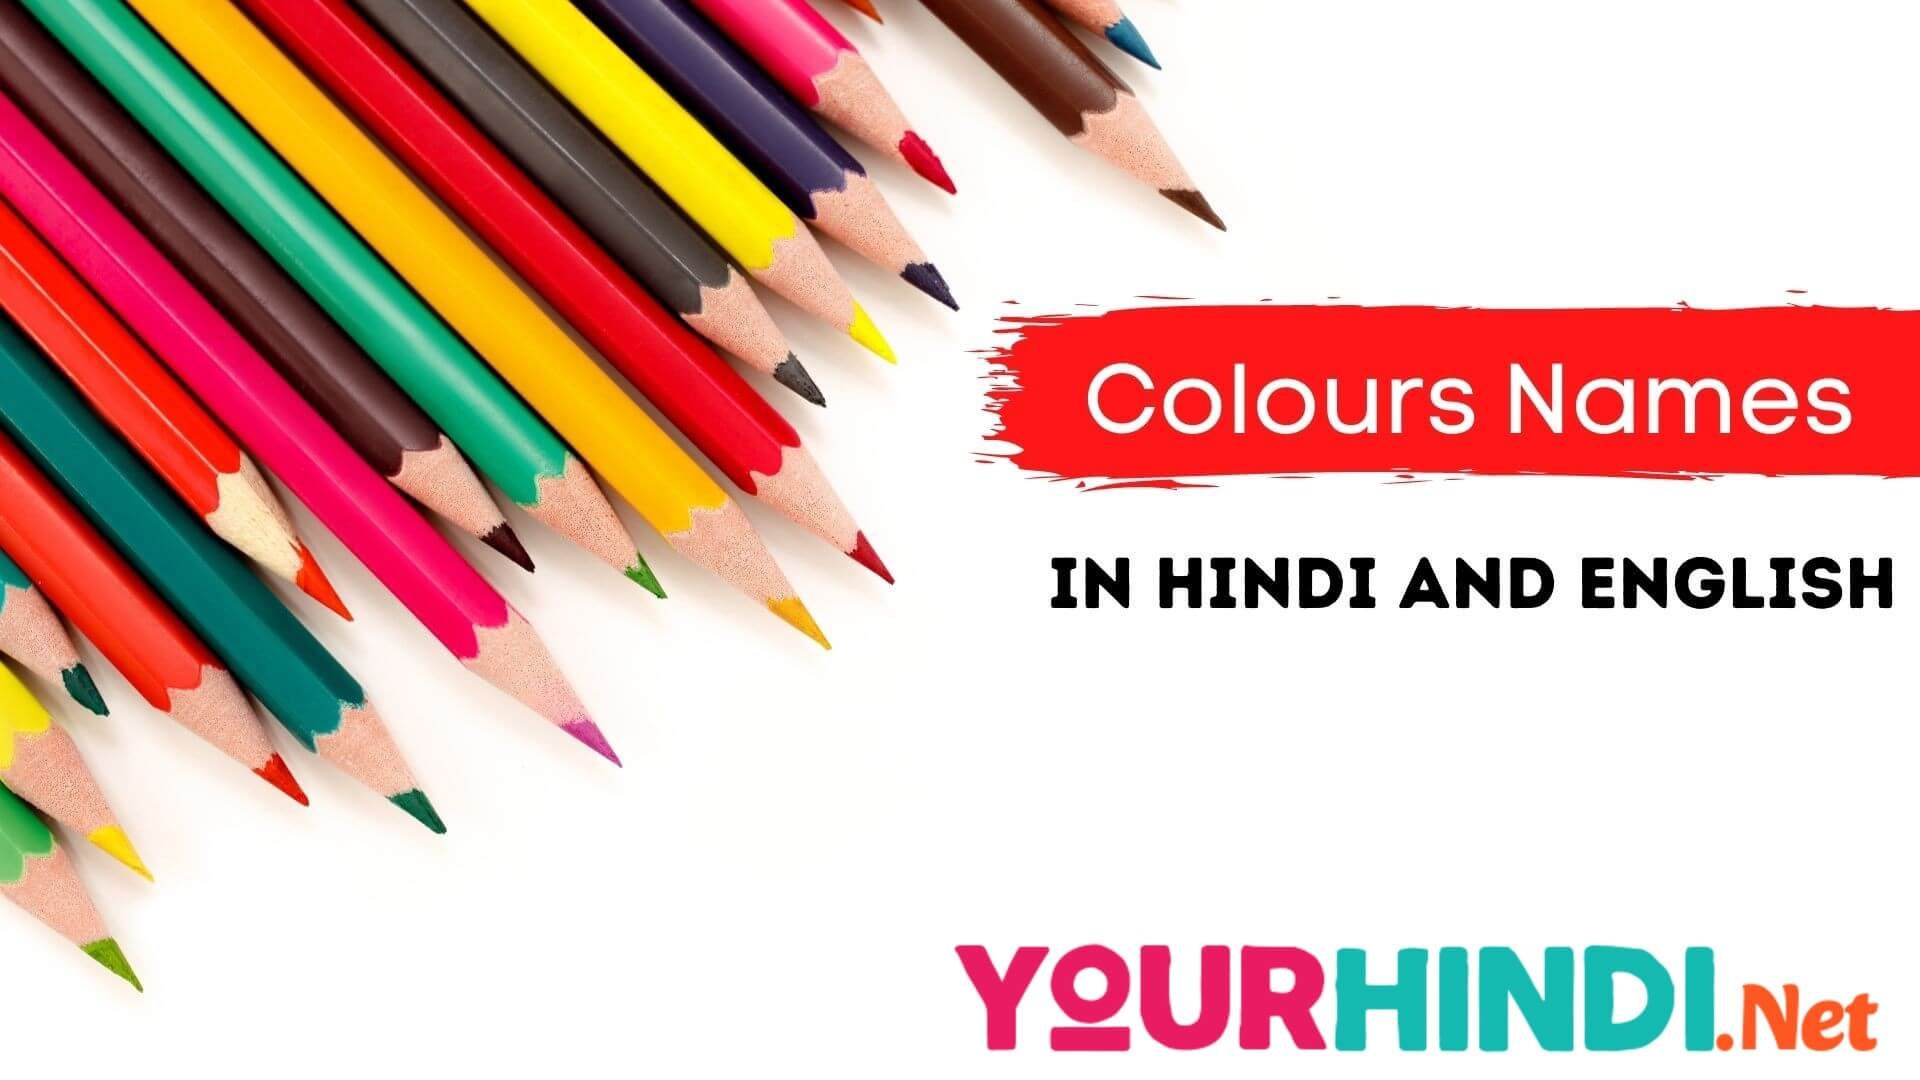 Colours Names in Hindi and English